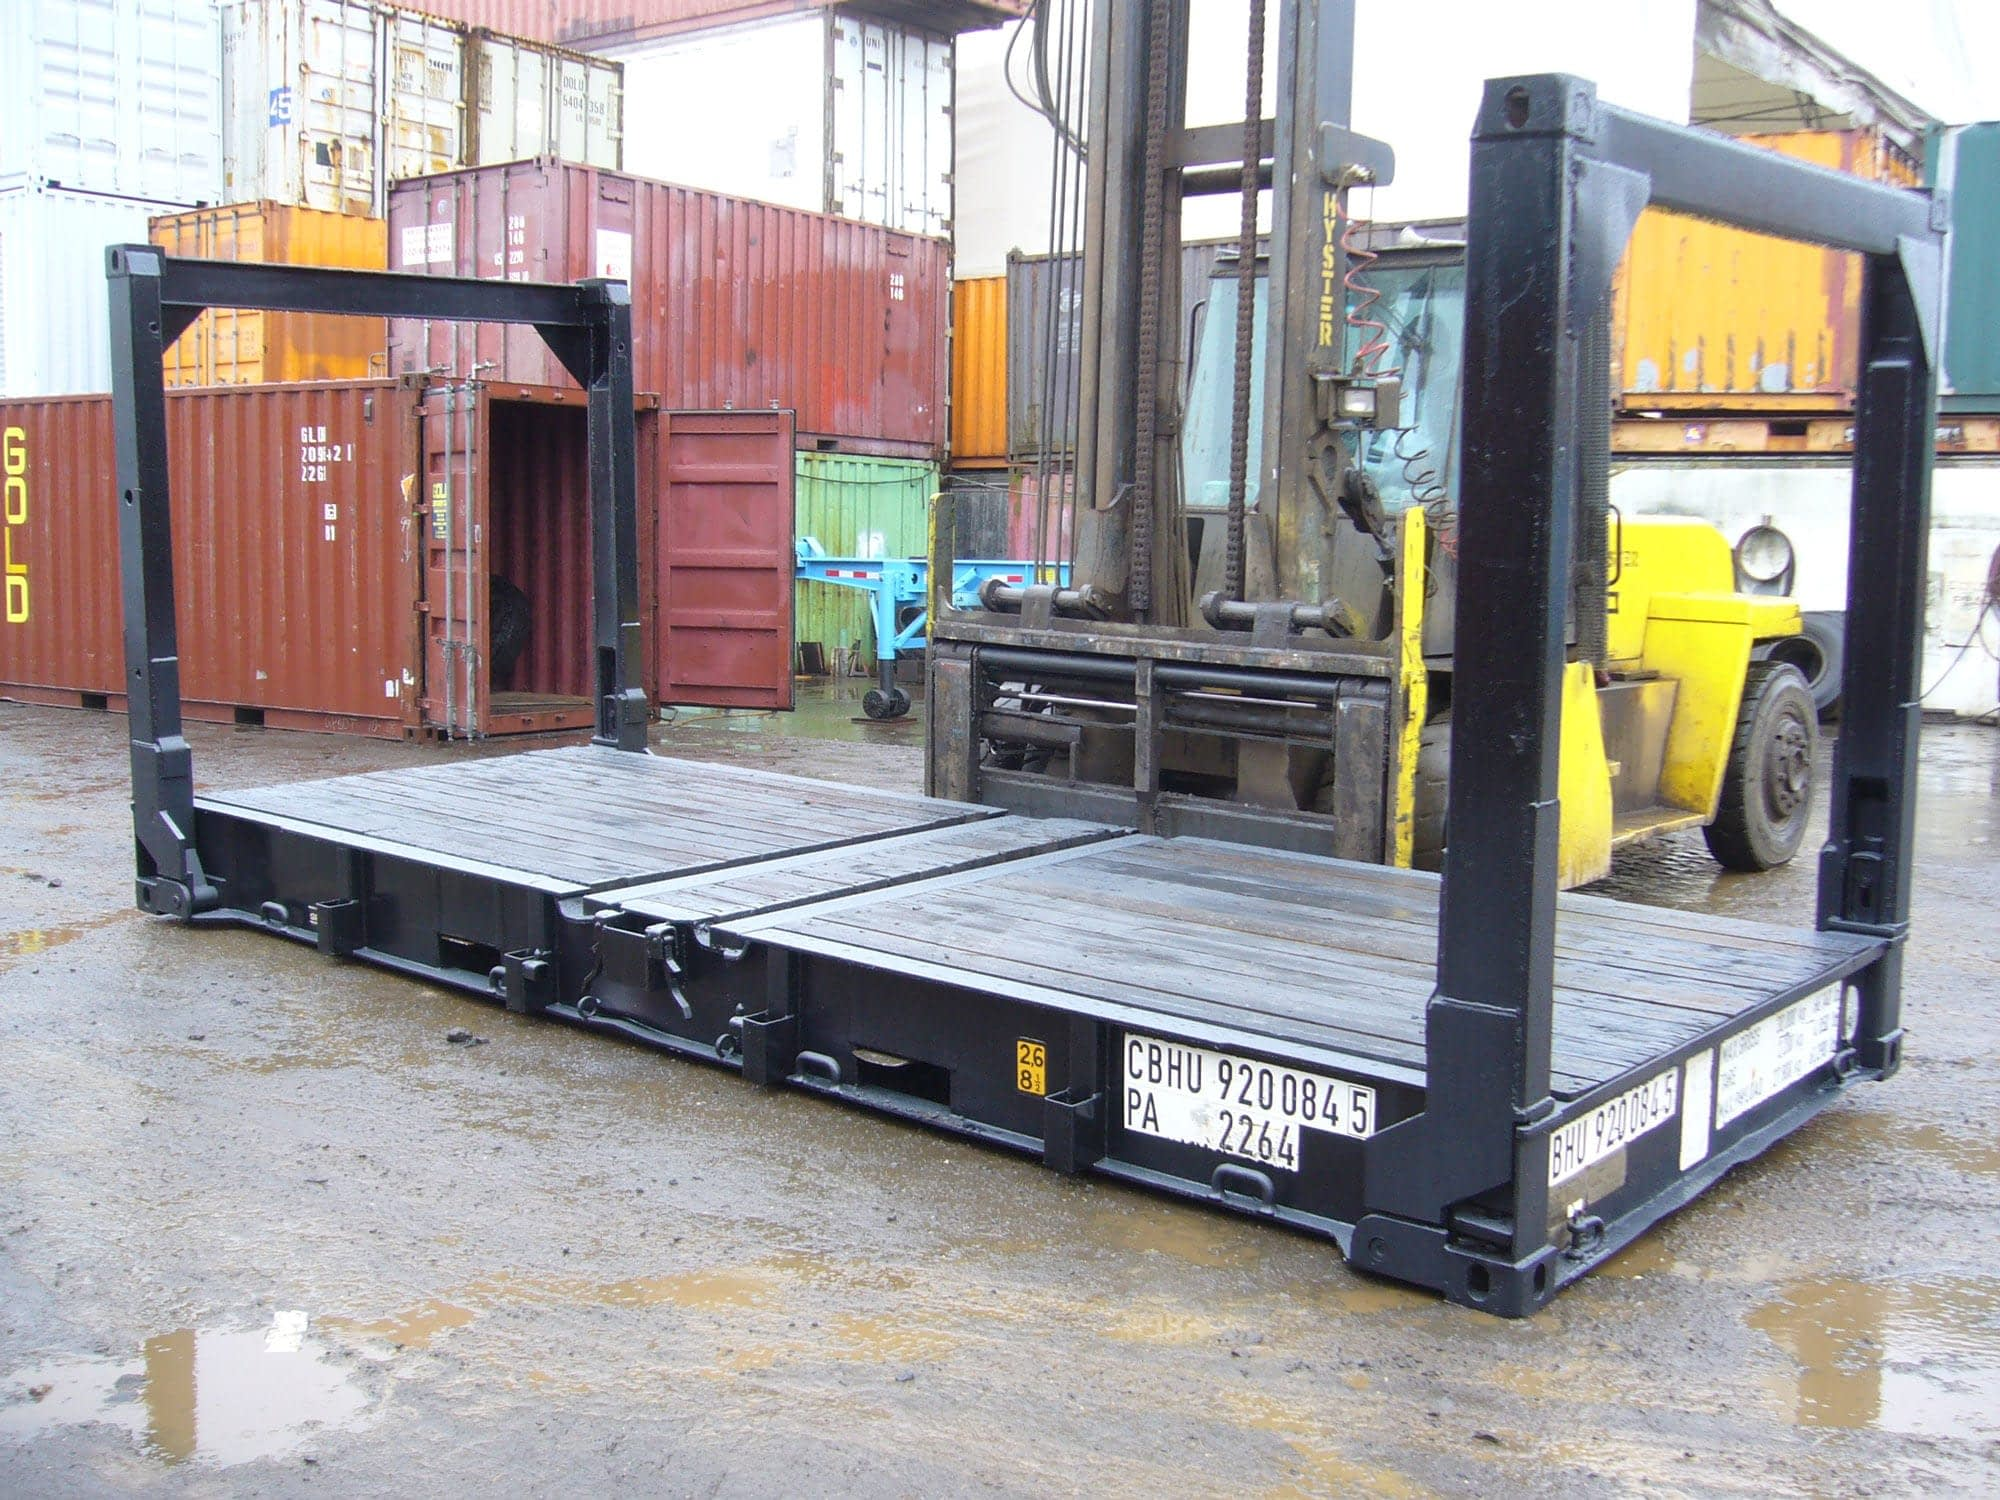 TRS stocks 20ft fixed end or collapsible flatracks and platforms